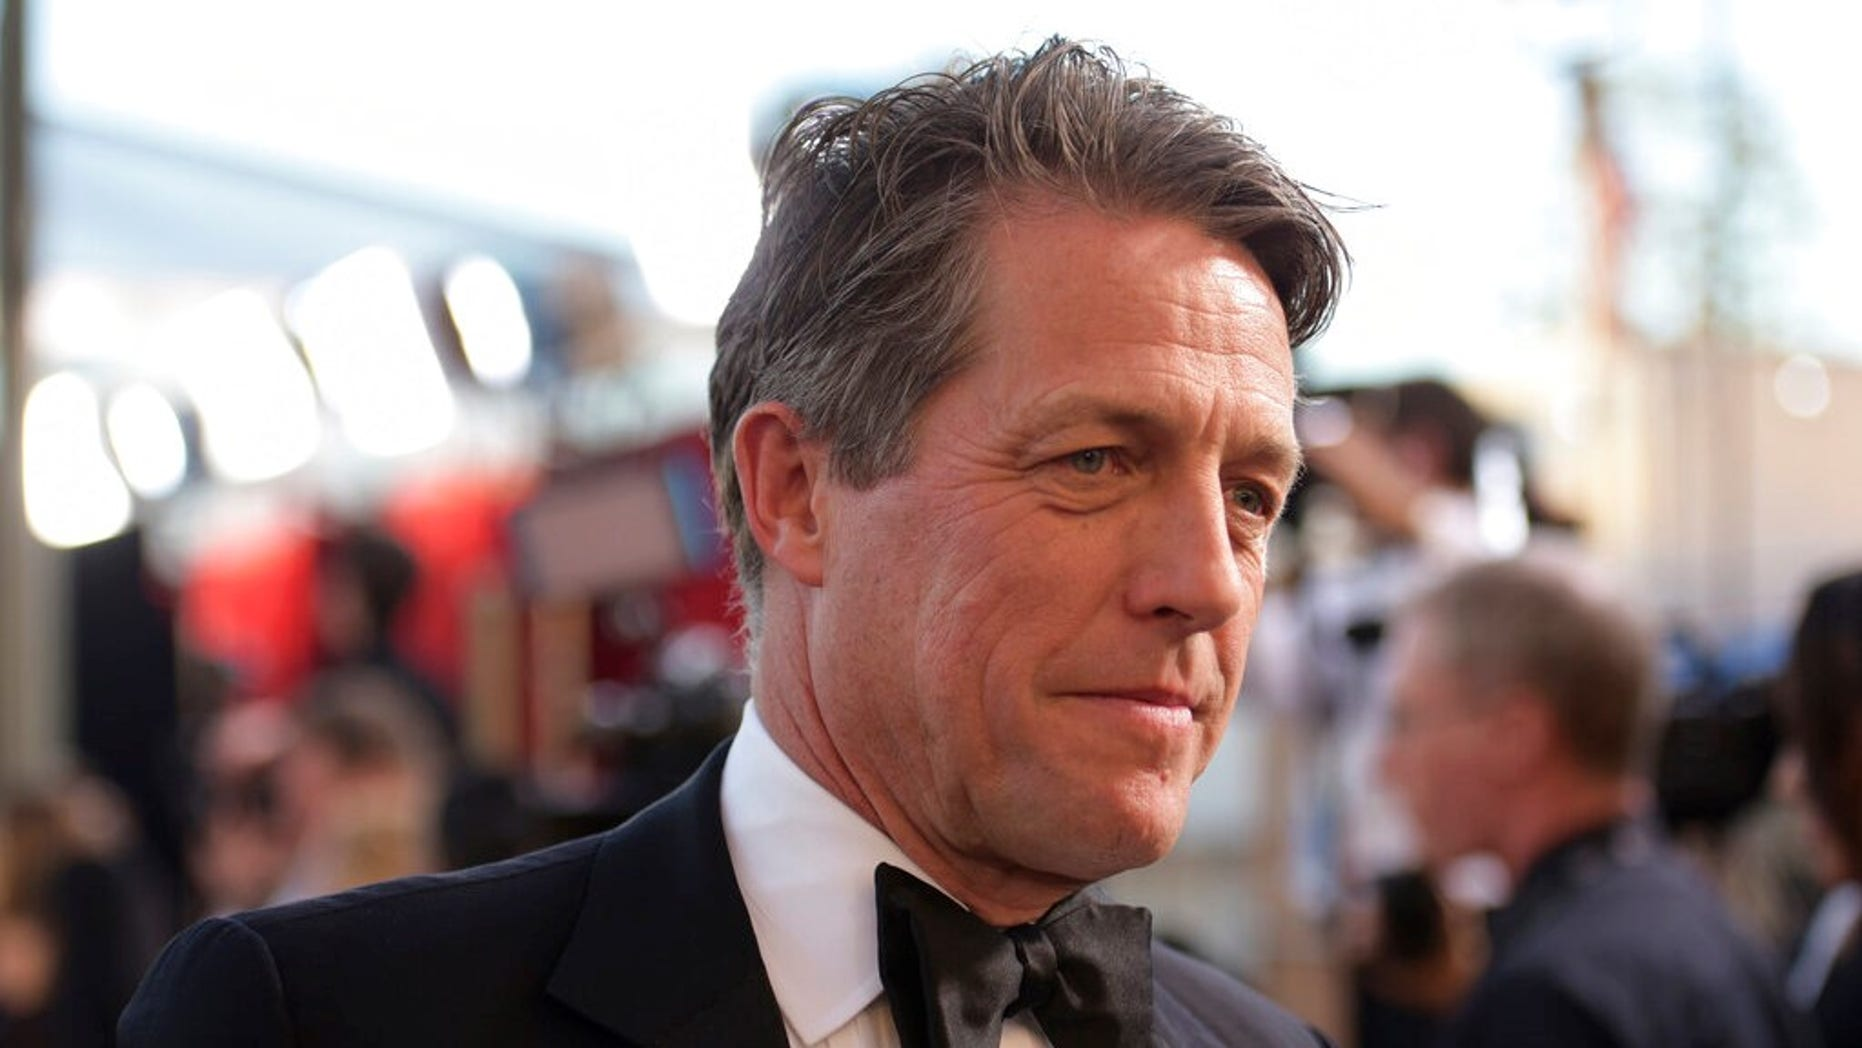 Hugh Grant appeals over script stolen in auto break